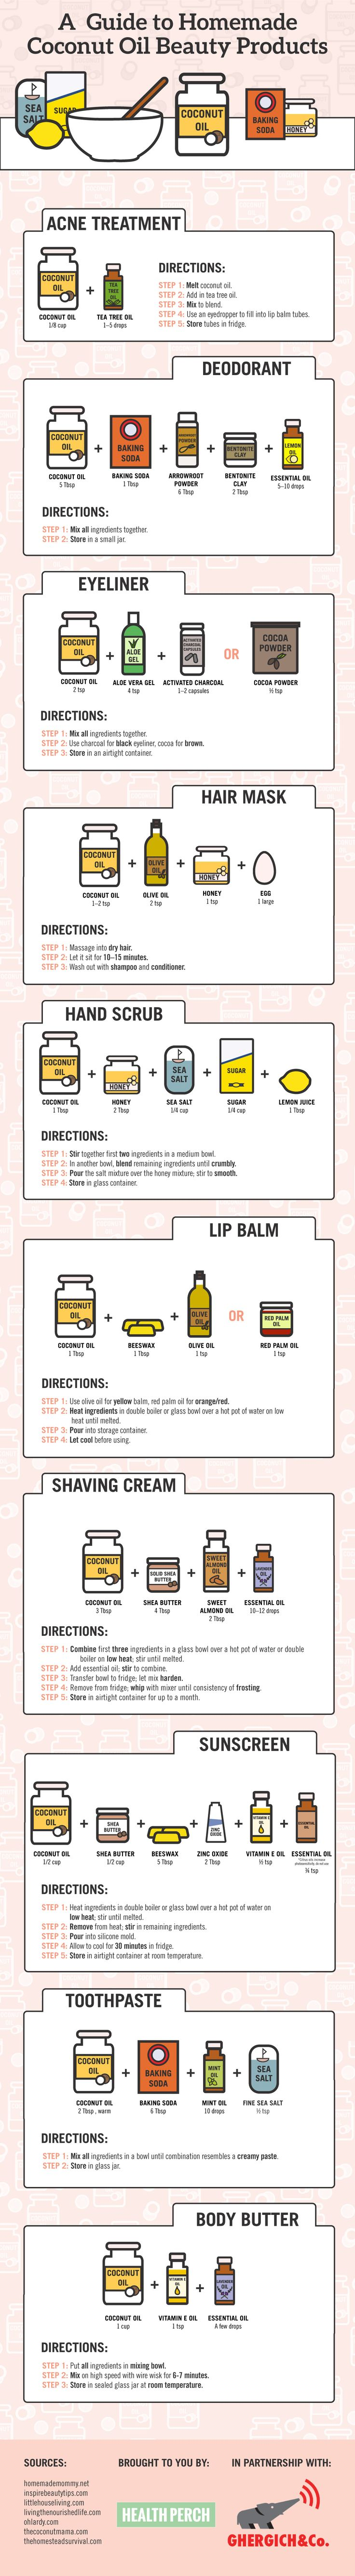 Make Your Own Coconut Oil Beauty Products